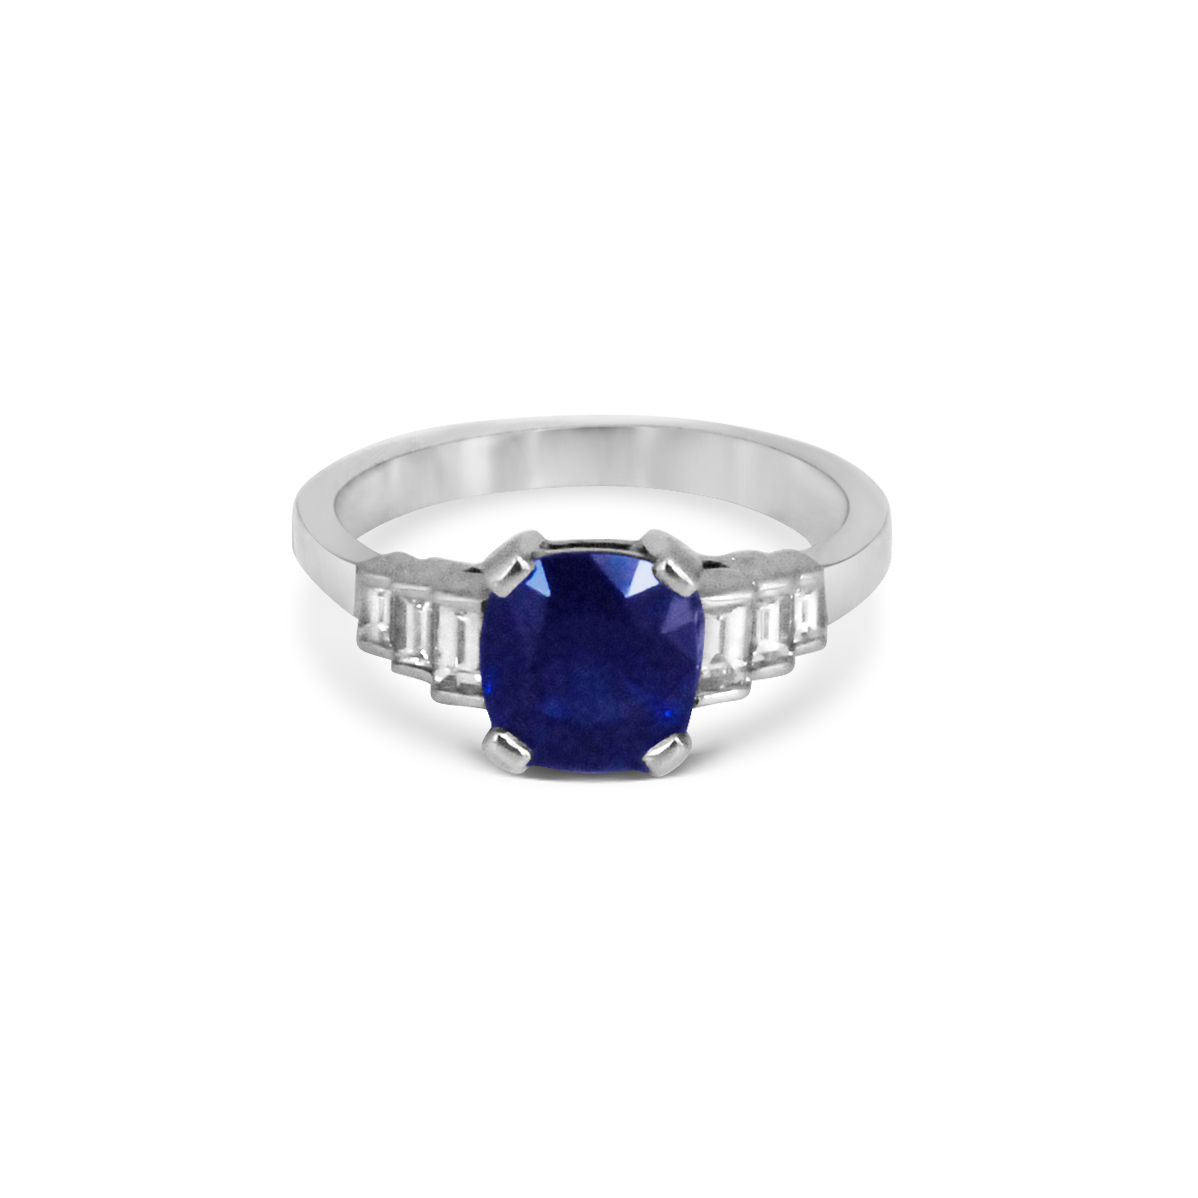 cushion-shaped-sapphire-and-diamond-baguette-cut-ring-mounted-in-platinum-2.jpg